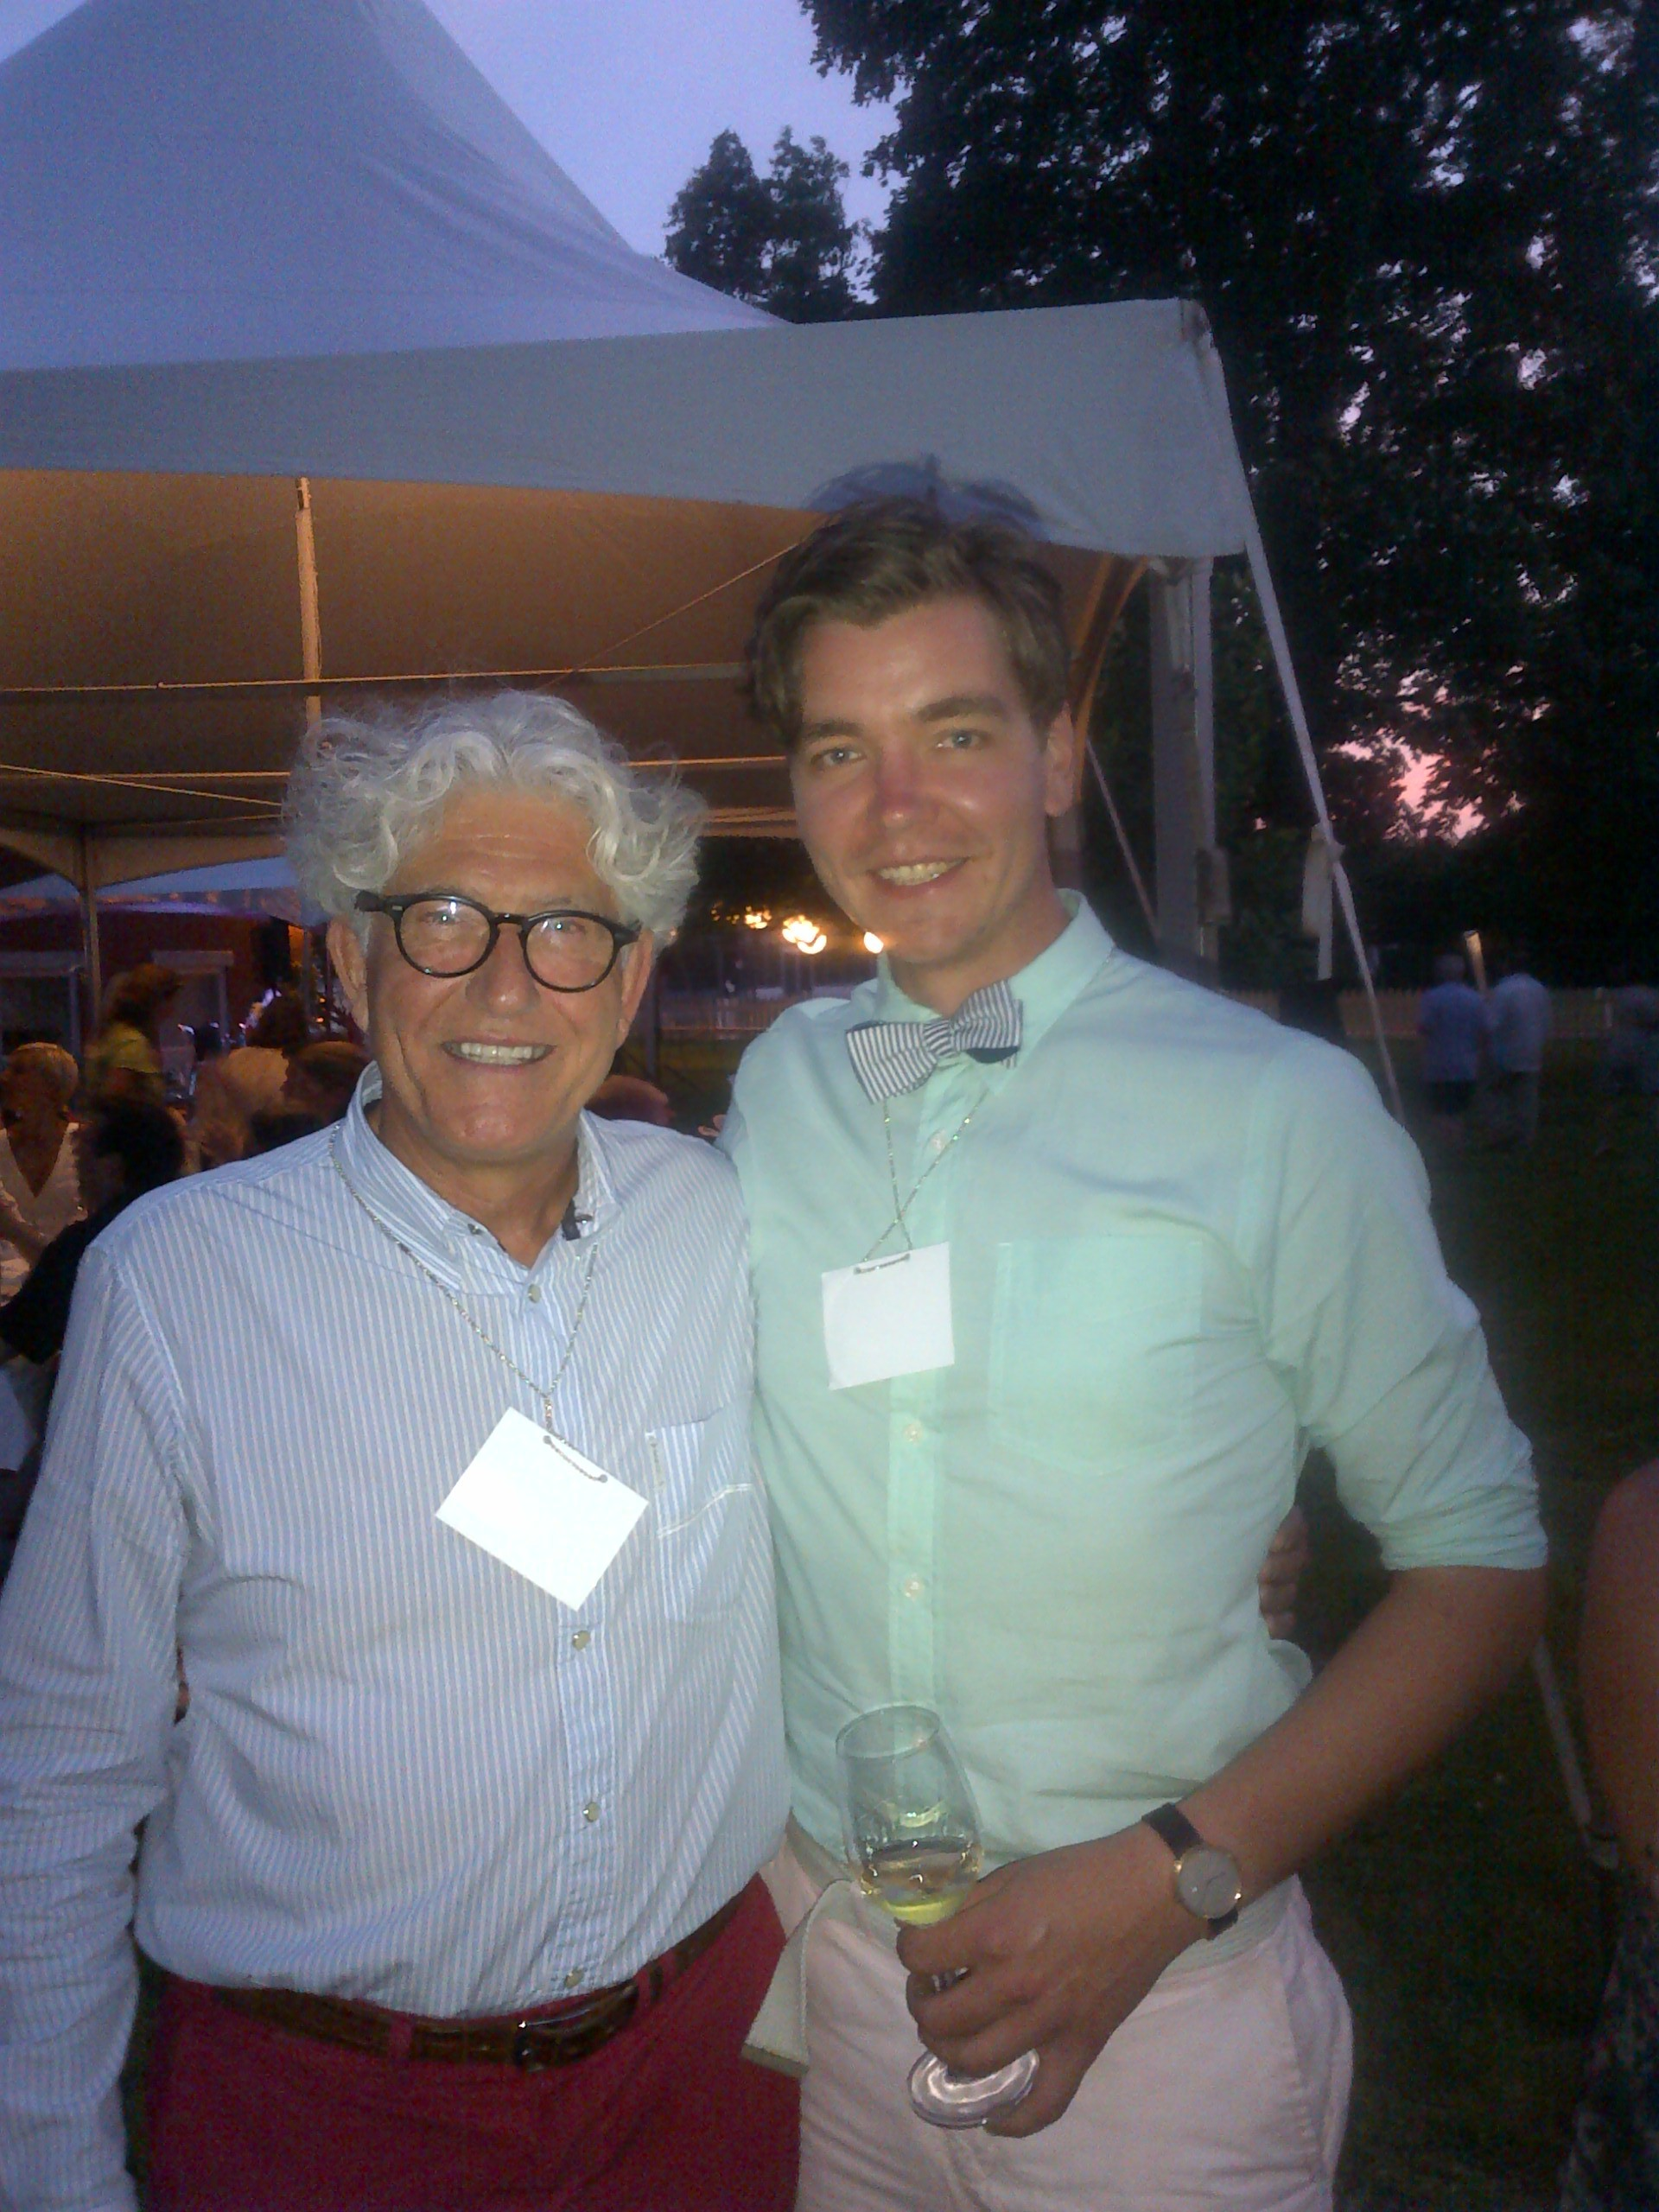 Jacques Lardiere and I at i4c gala.